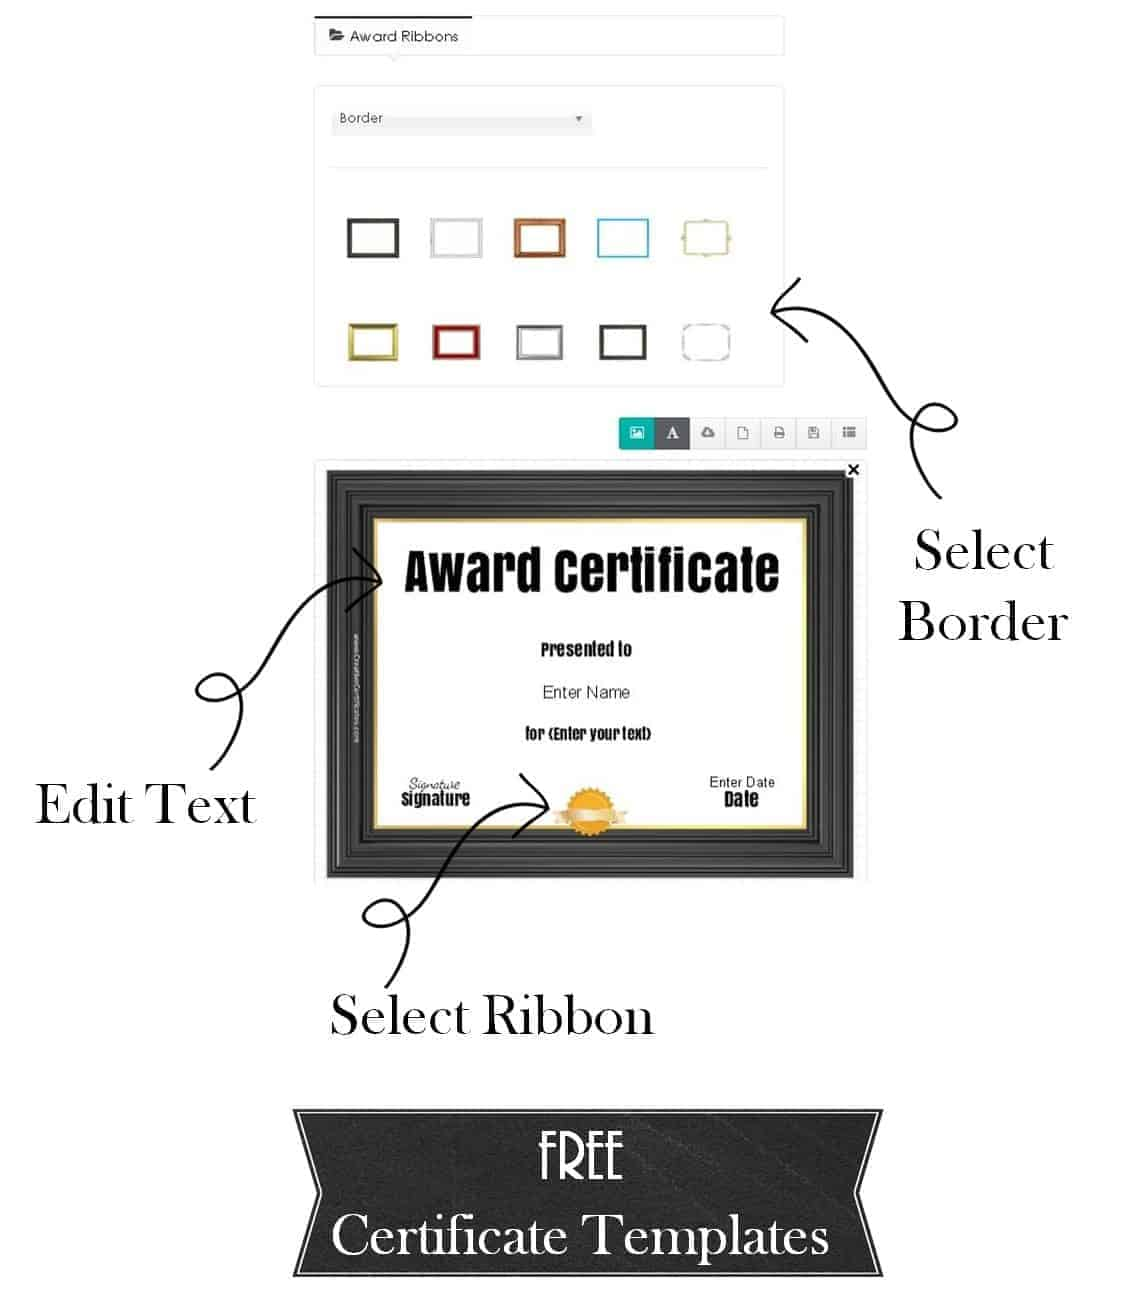 Free Printable and Customizable Certificate Templates